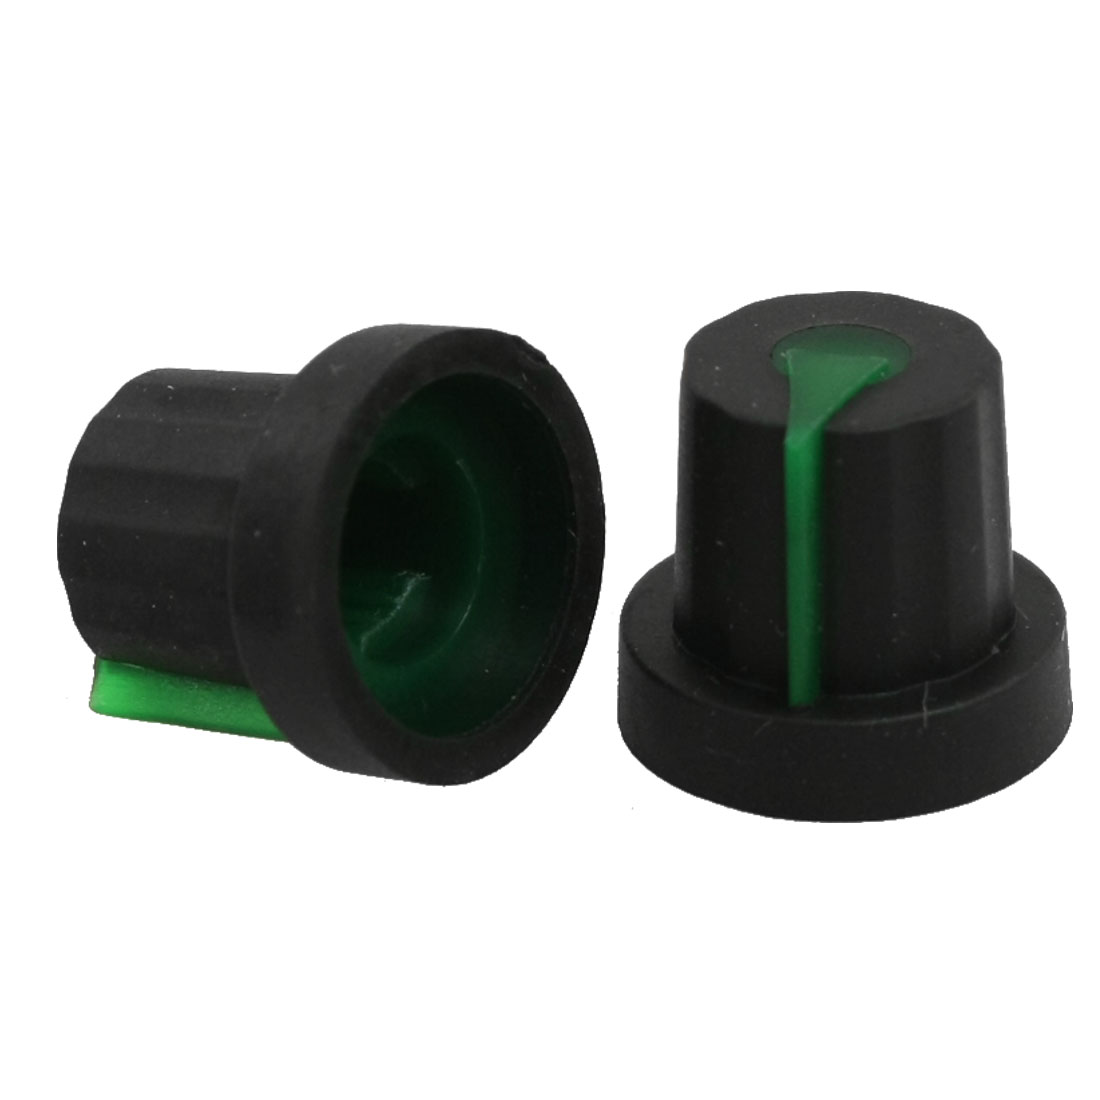 10 Pcs Rubber Coated Plastic 6mm Shaft Dia Knurled Grip Potentiometer Knobs